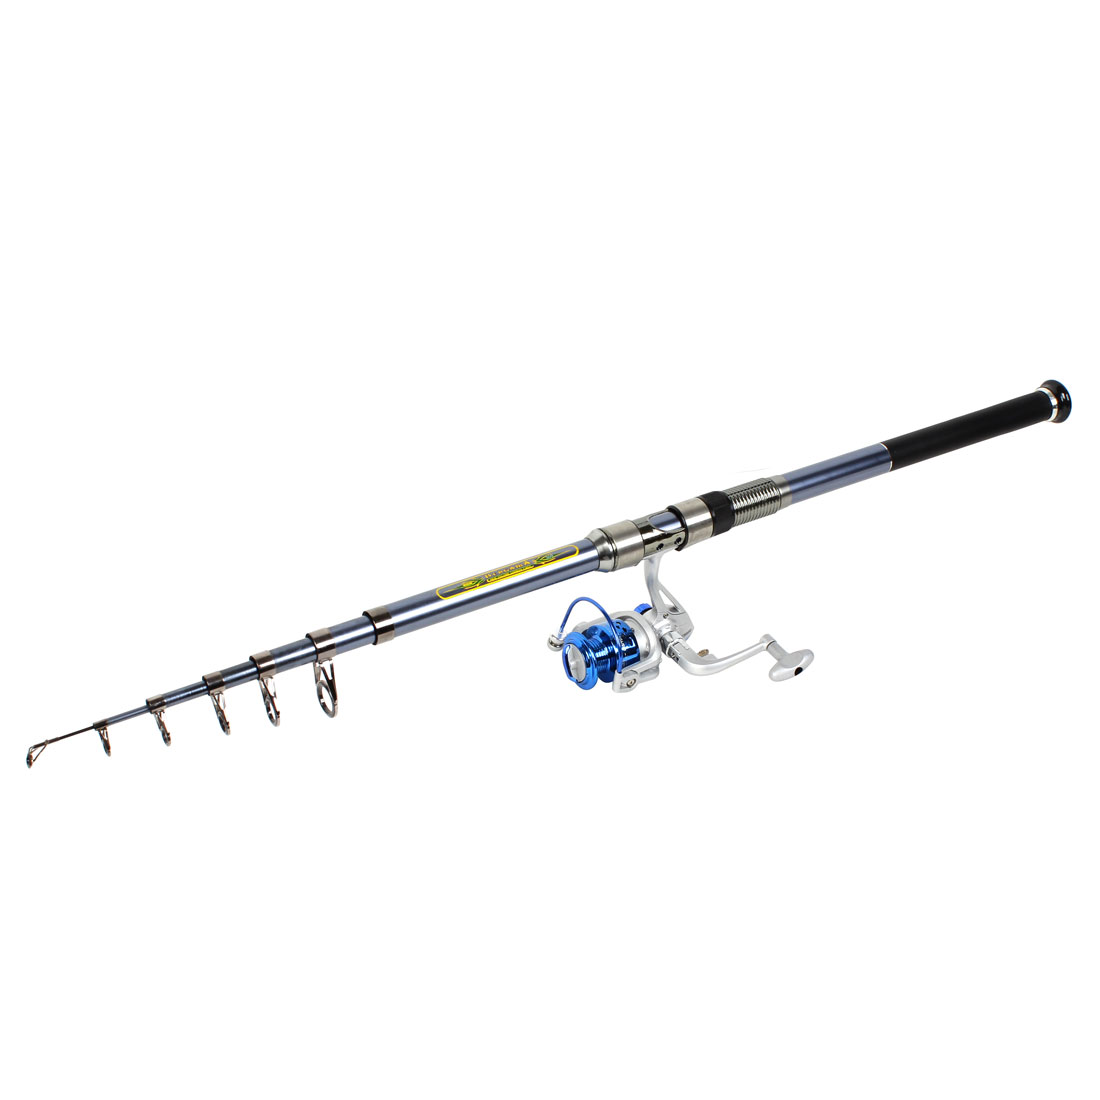 10Ft 7 Sections Telescopic Spinning Fish Rods Casting Pole Tackle Gray